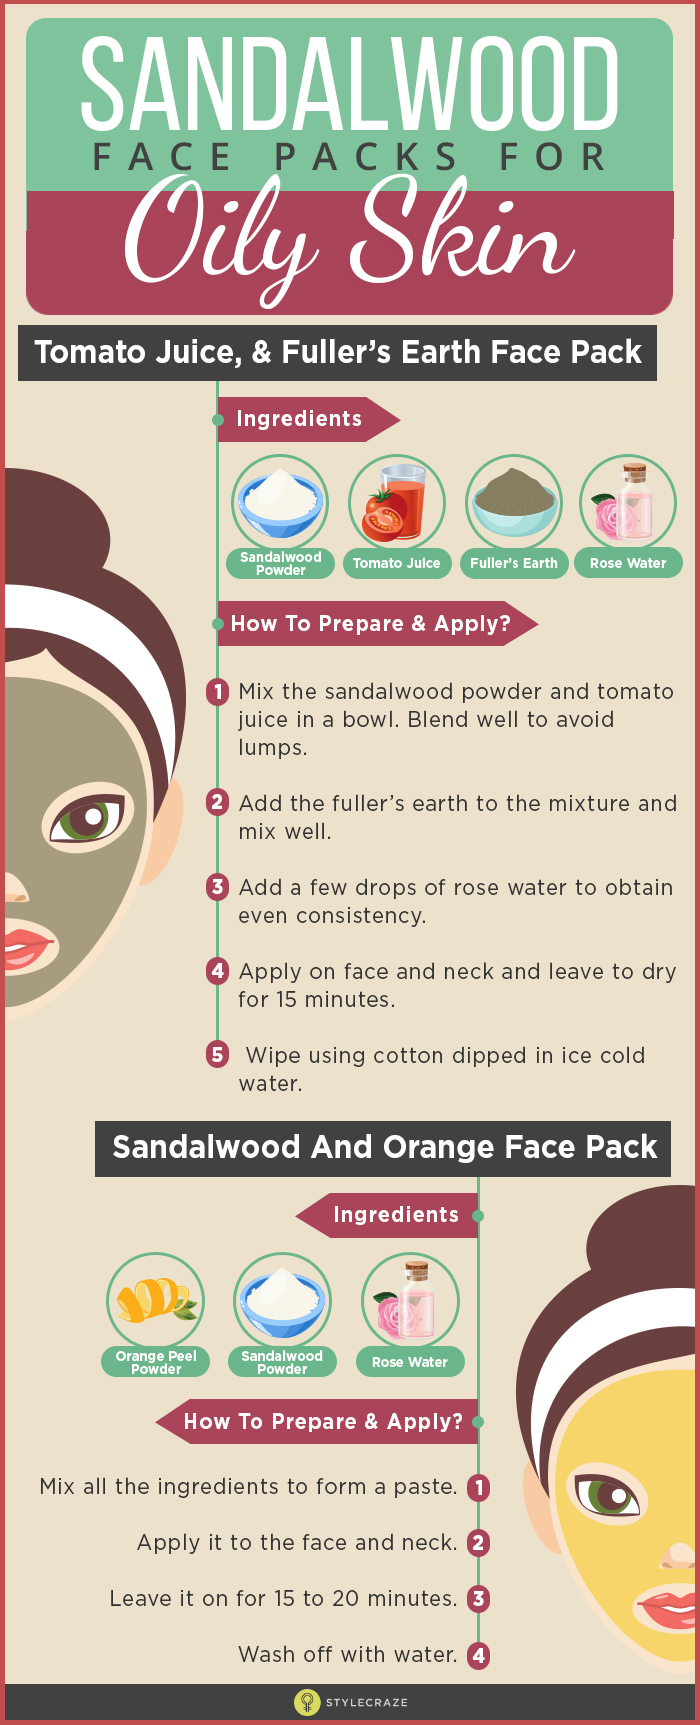 How To Prepare And Apply Chandan Face Packs For Oily Skin?